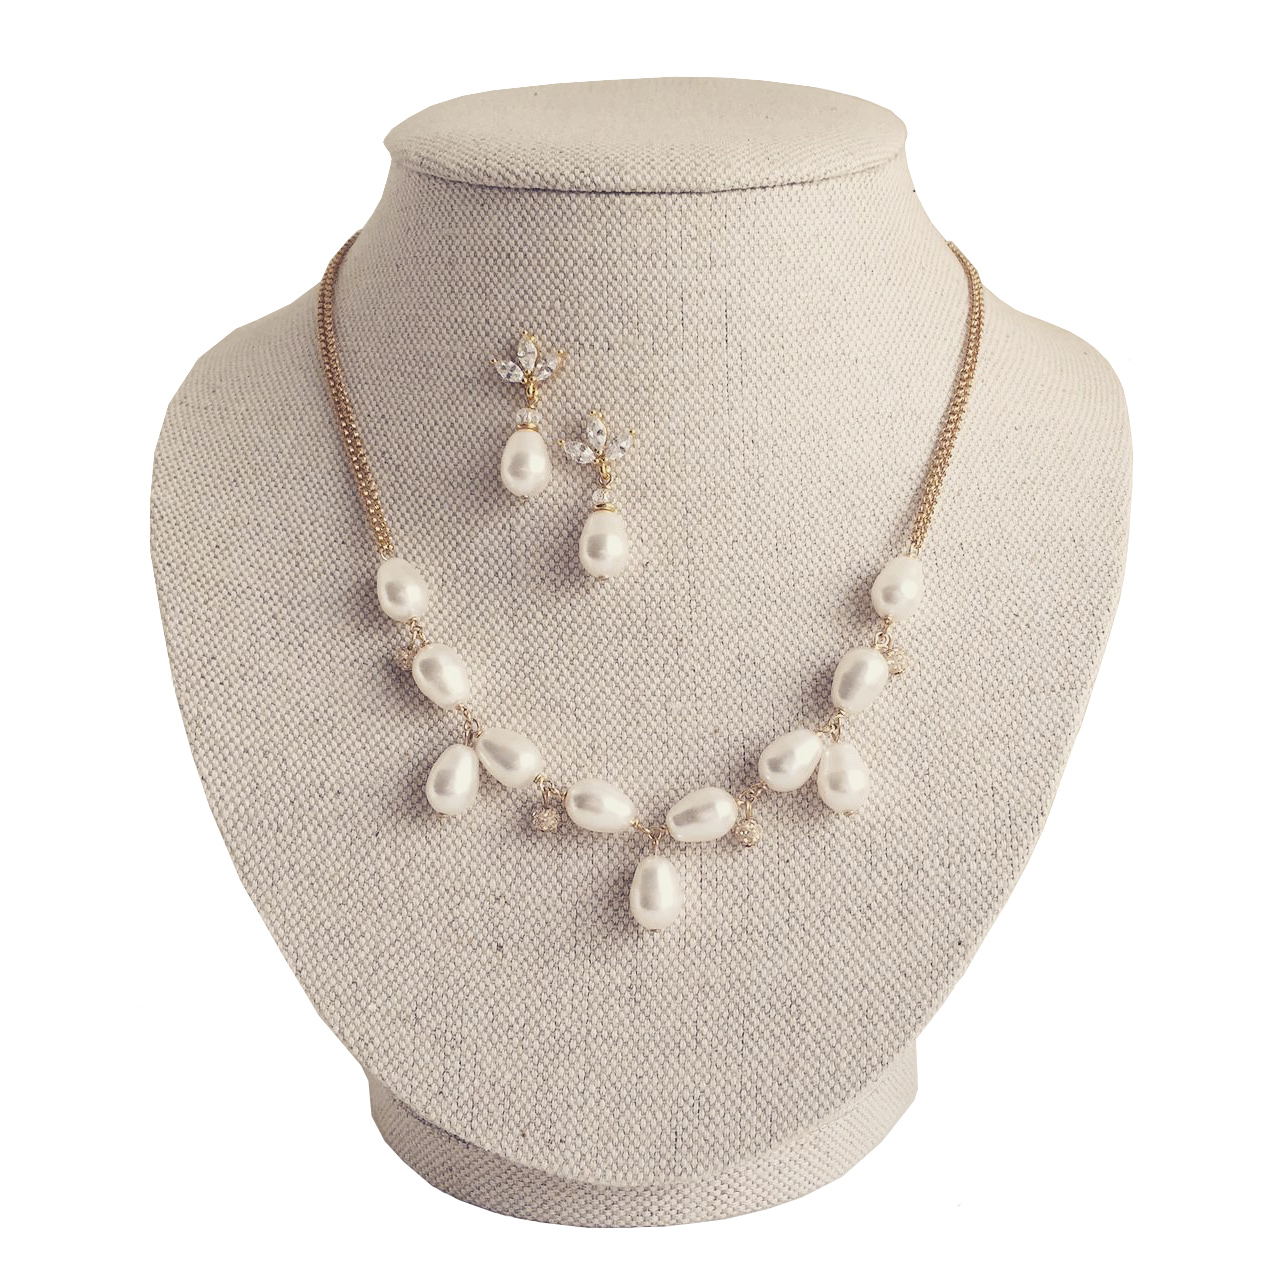 gold-pearl-necklace.jpg